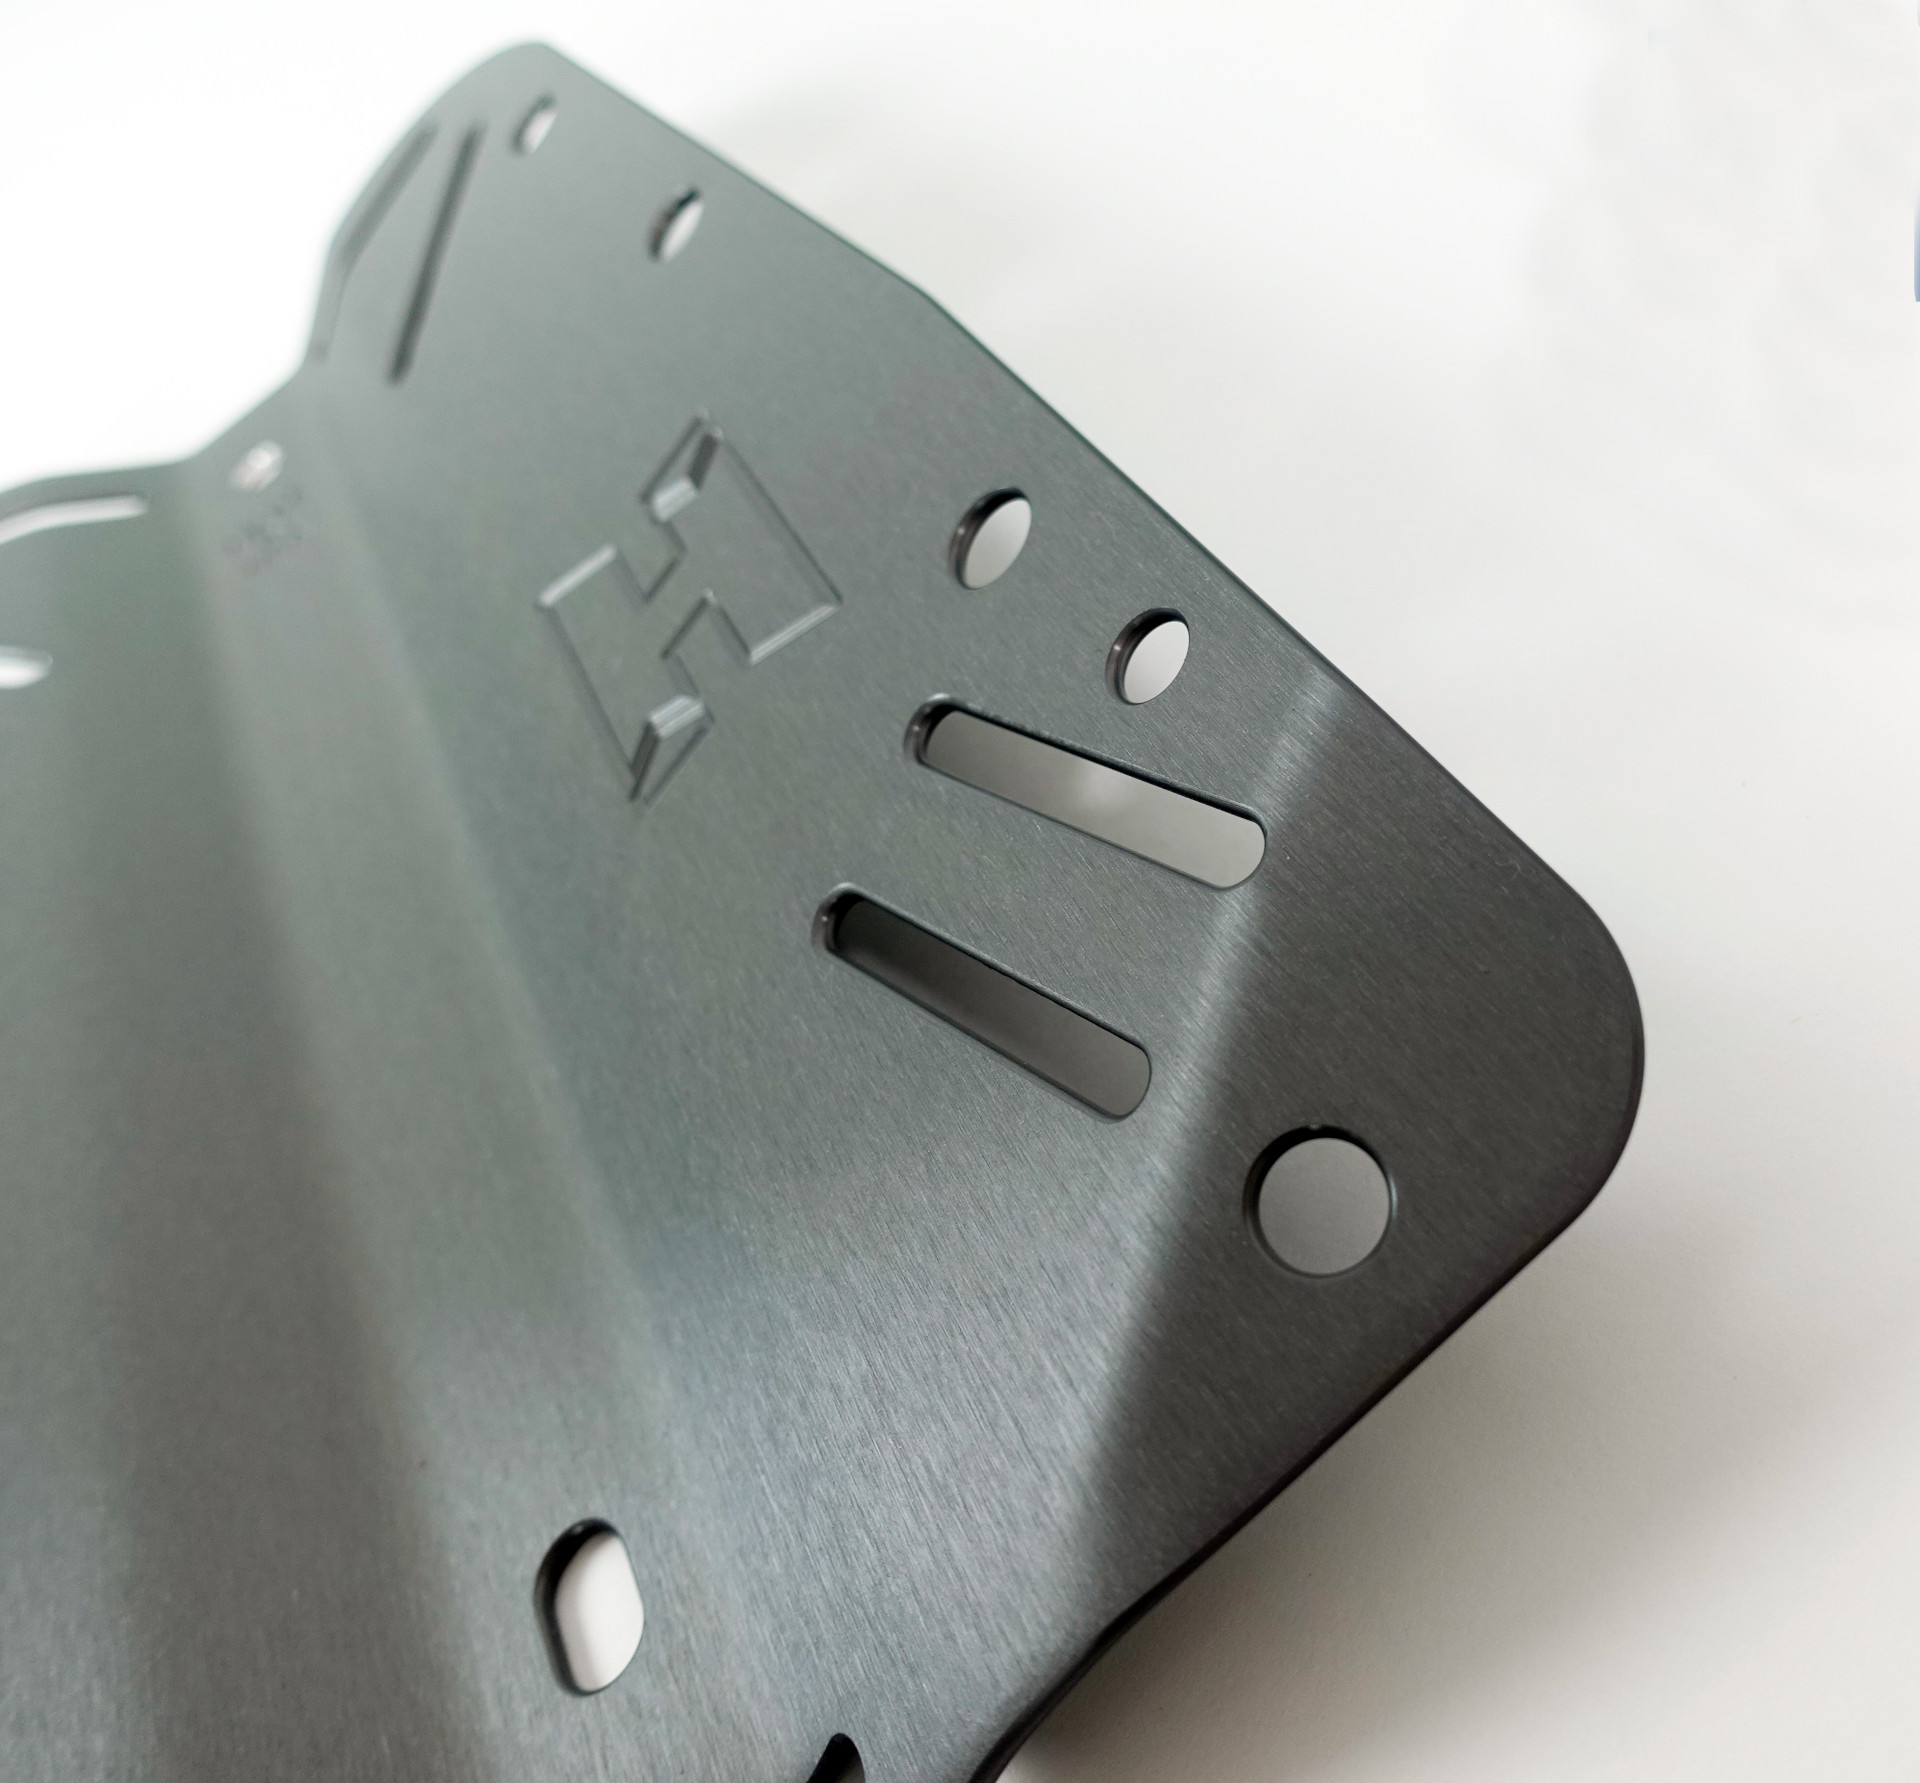 WHAT MAKES A HALCYON BACKPLATE SO UNIQUE?